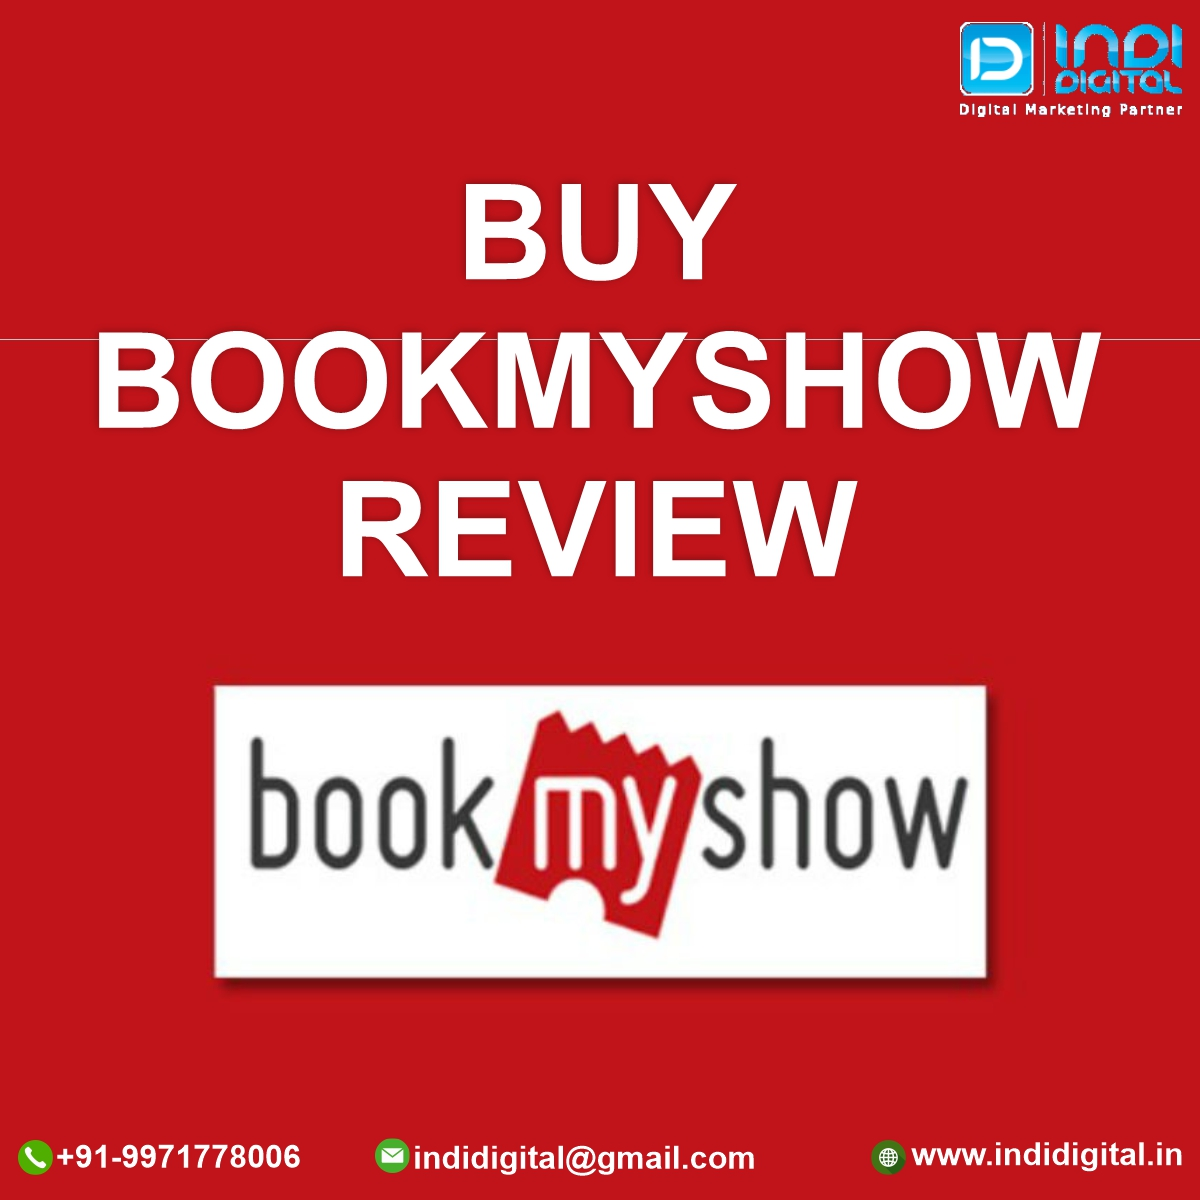 How to buy BookMyShow review